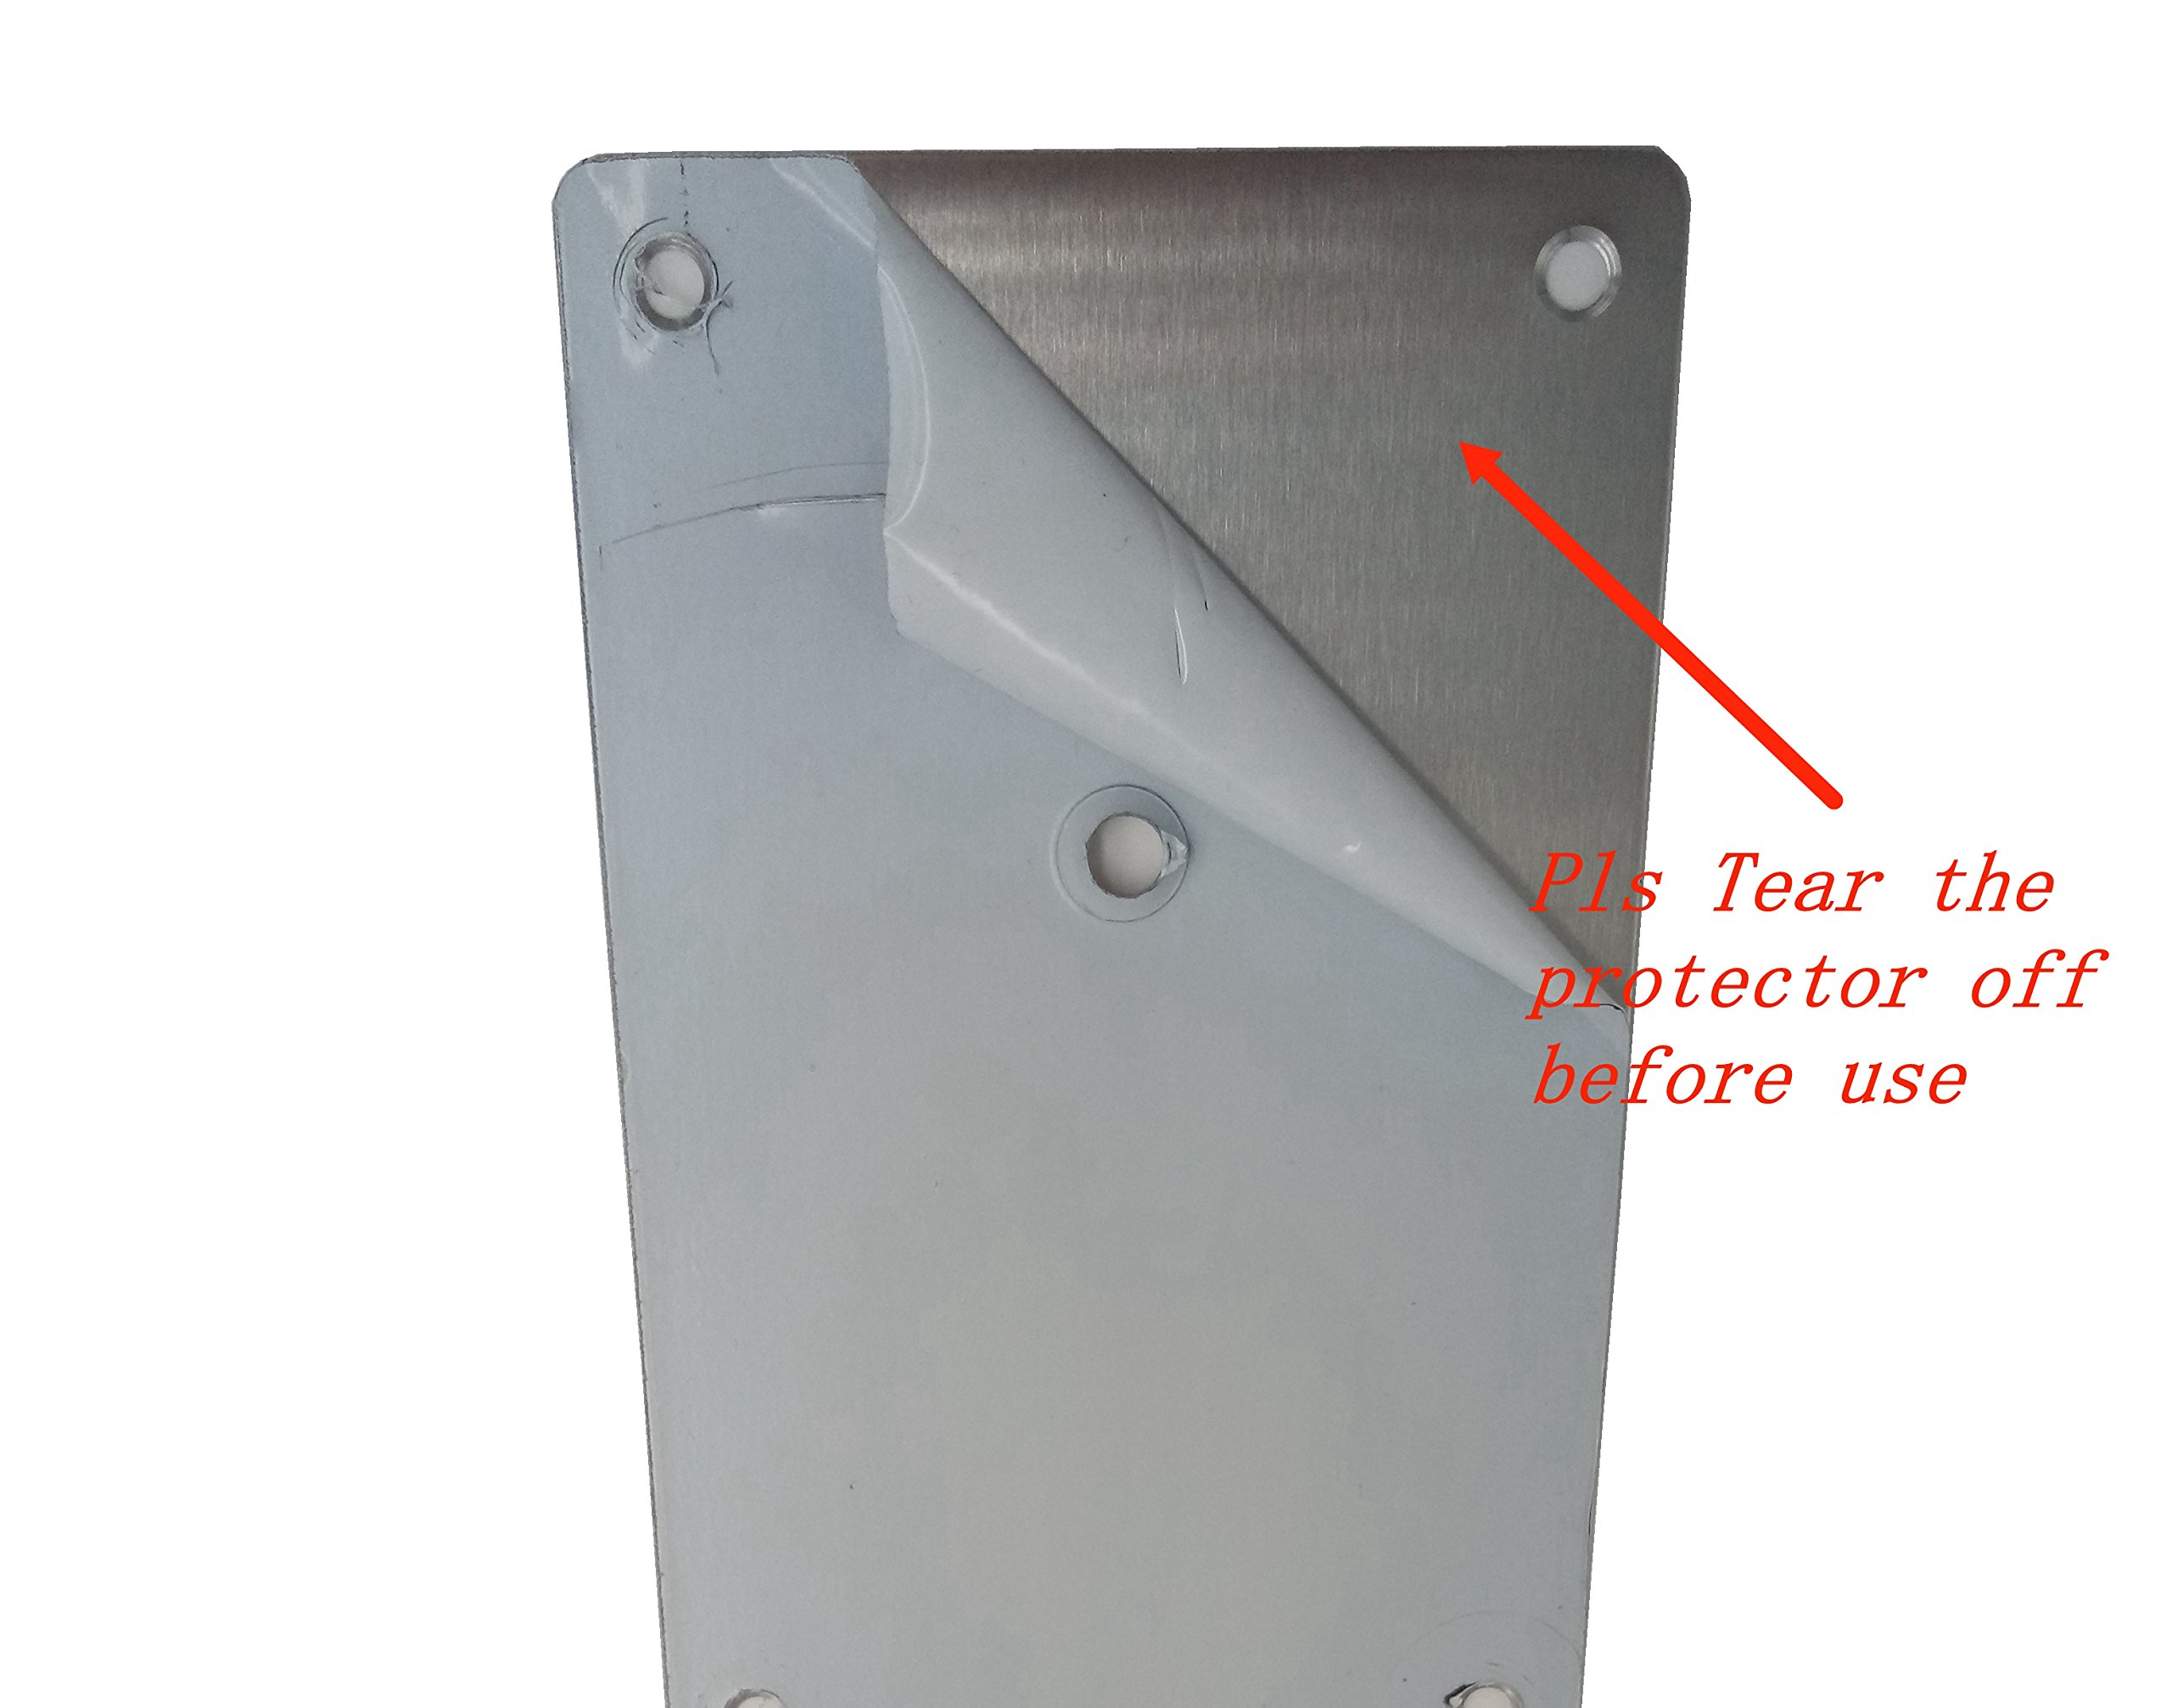 Promotion! VRSS Pack of 2 Satin Finish 304 Stainless Steel Kick Plate 200mm Height x 430mm Width 1.2mm Thick, 2 Pack by VRSS (Image #4)